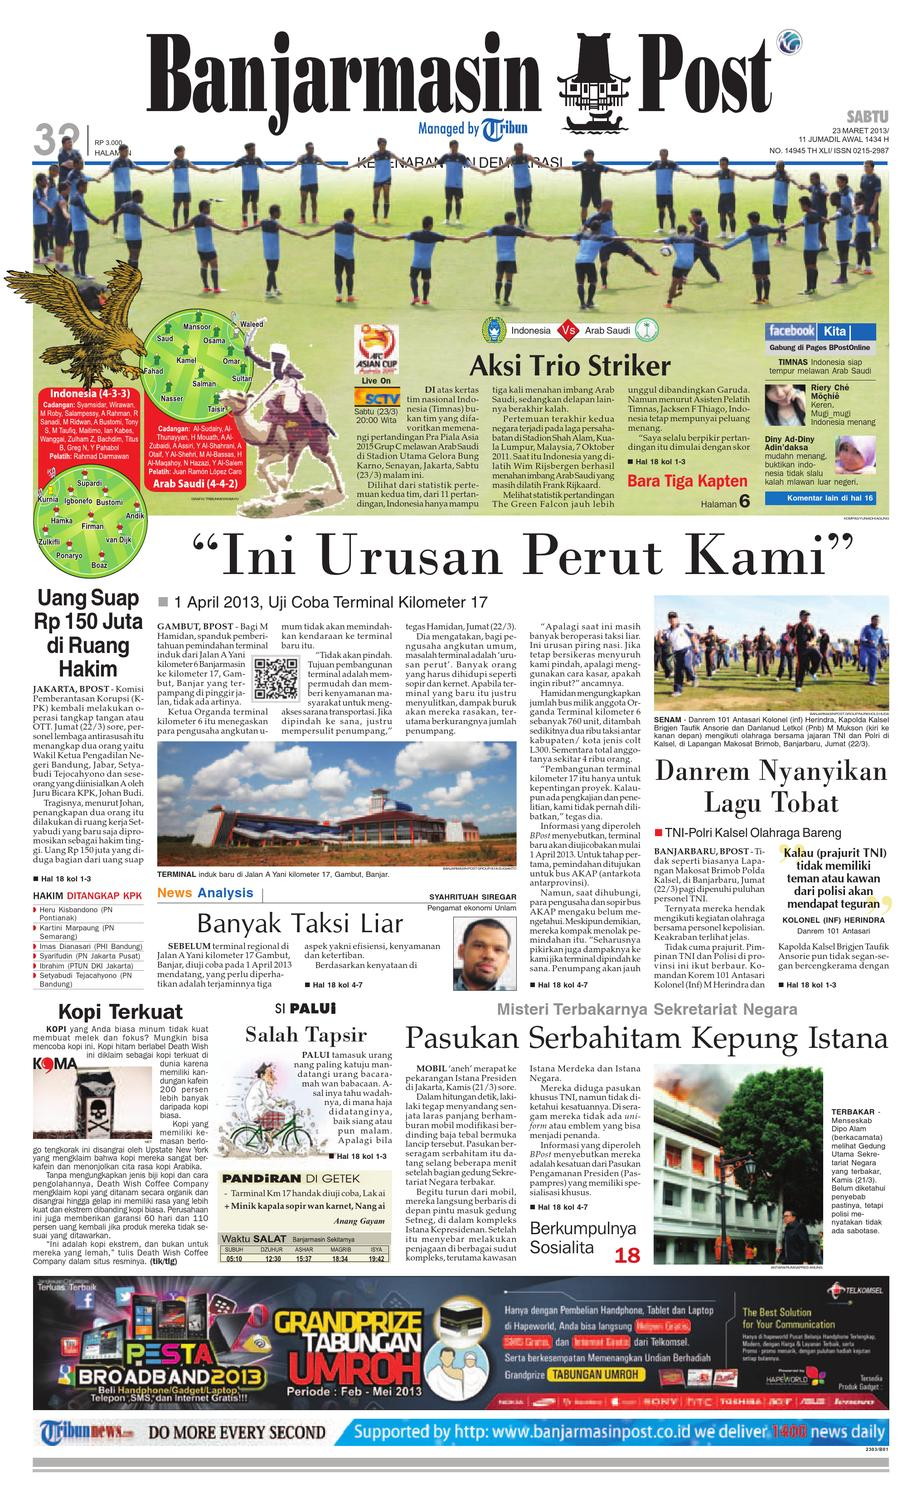 Banjarmasin Post edisi cetak Sabtu, 23 Maret 2013 by Banjarmasin Post -  issuu